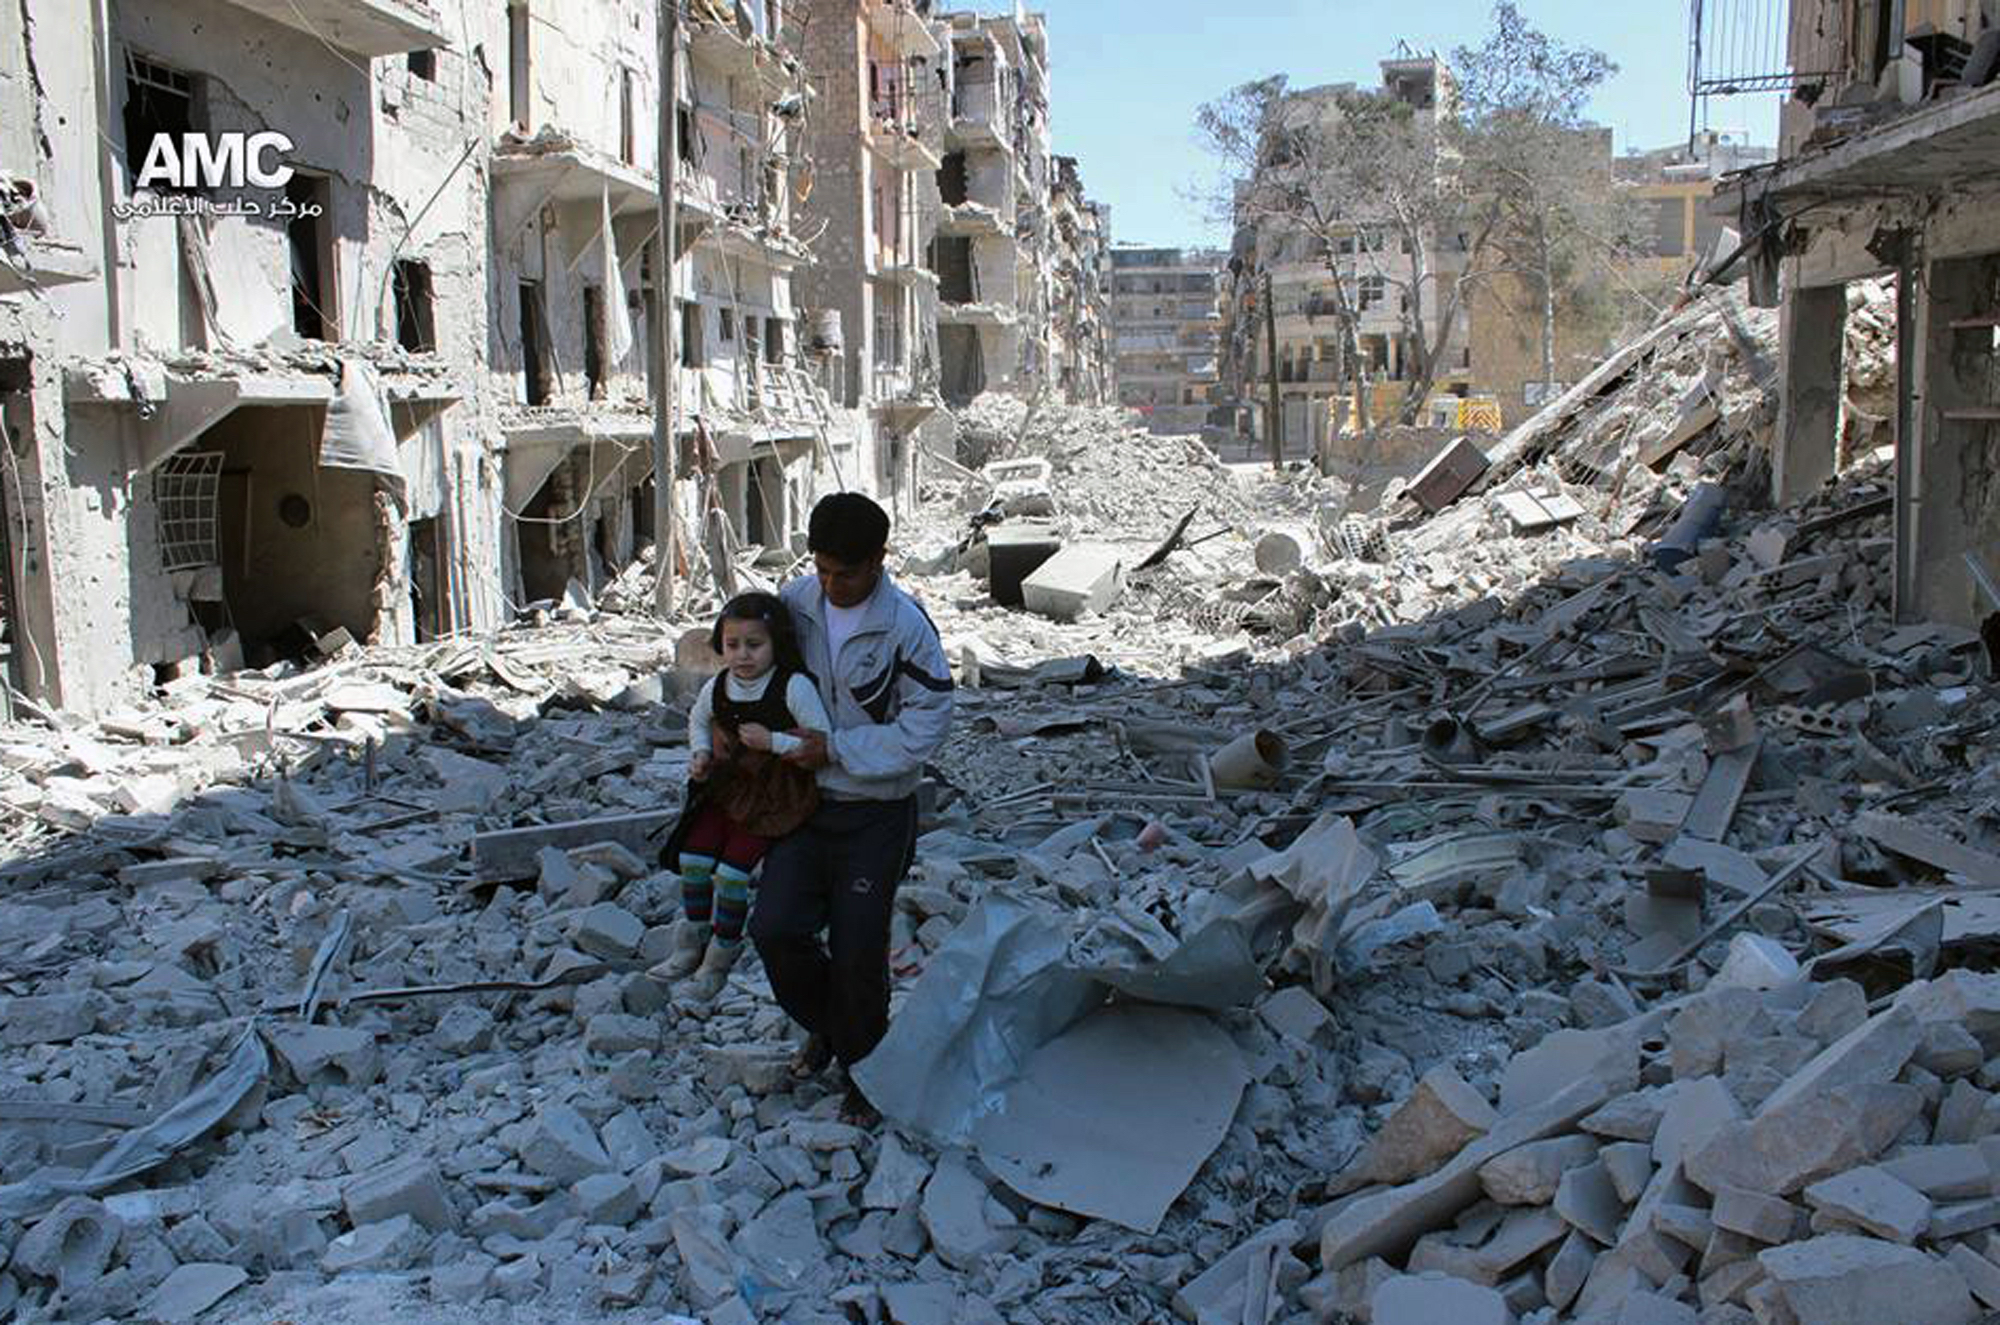 In This April 21, 2014, file photo, provided by the anti-government activist group Aleppo Media Center (AMC), which has been authenticated based on its contents and other AP reporting, shows a Syrian man holding a girl as he stands on the rubble of houses that were destroyed by Syrian government forces air strikes in Aleppo,Syria. (AP Photo/Aleppo Media Center AMC, File)